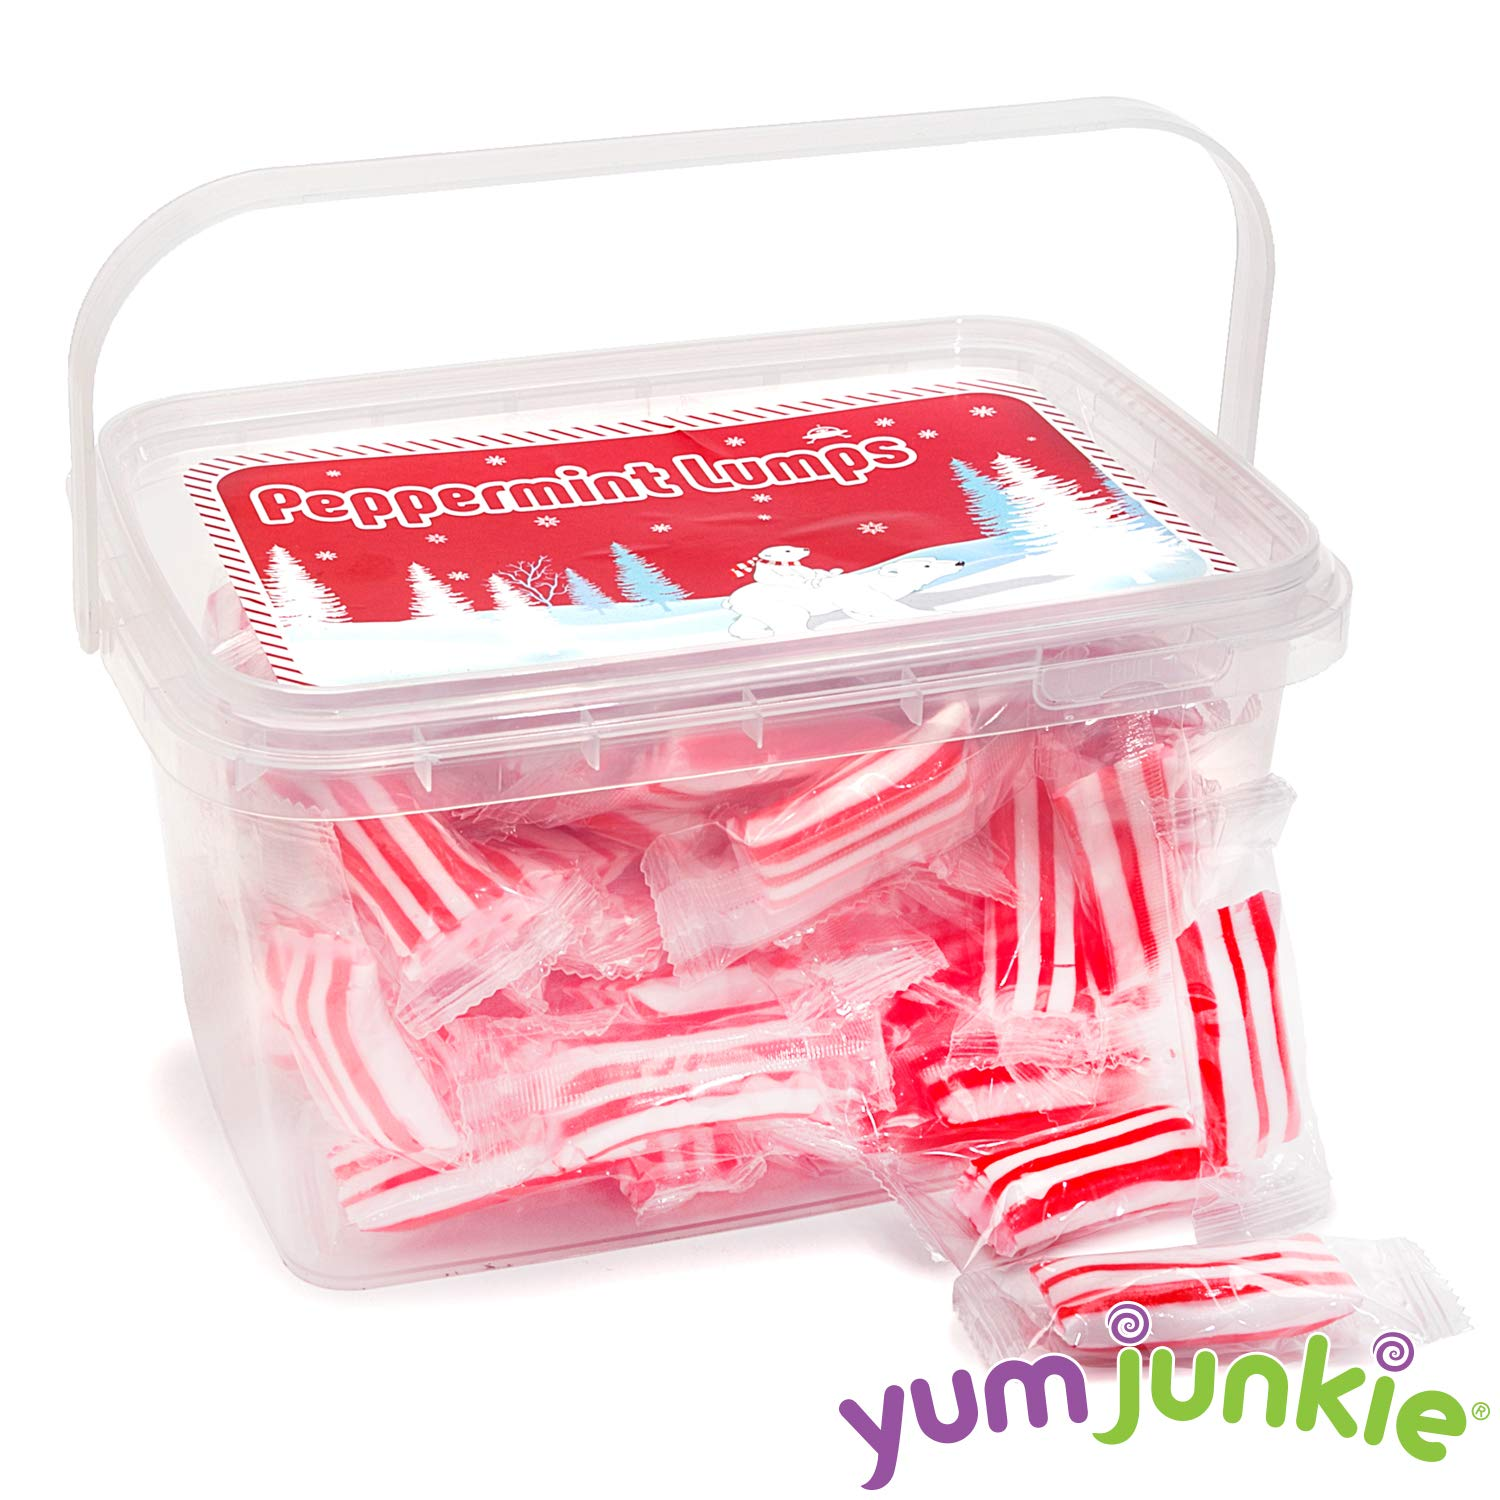 Sassy Peppermint Lumps Hard Candy - 80-Piece Tub by YumJunkie